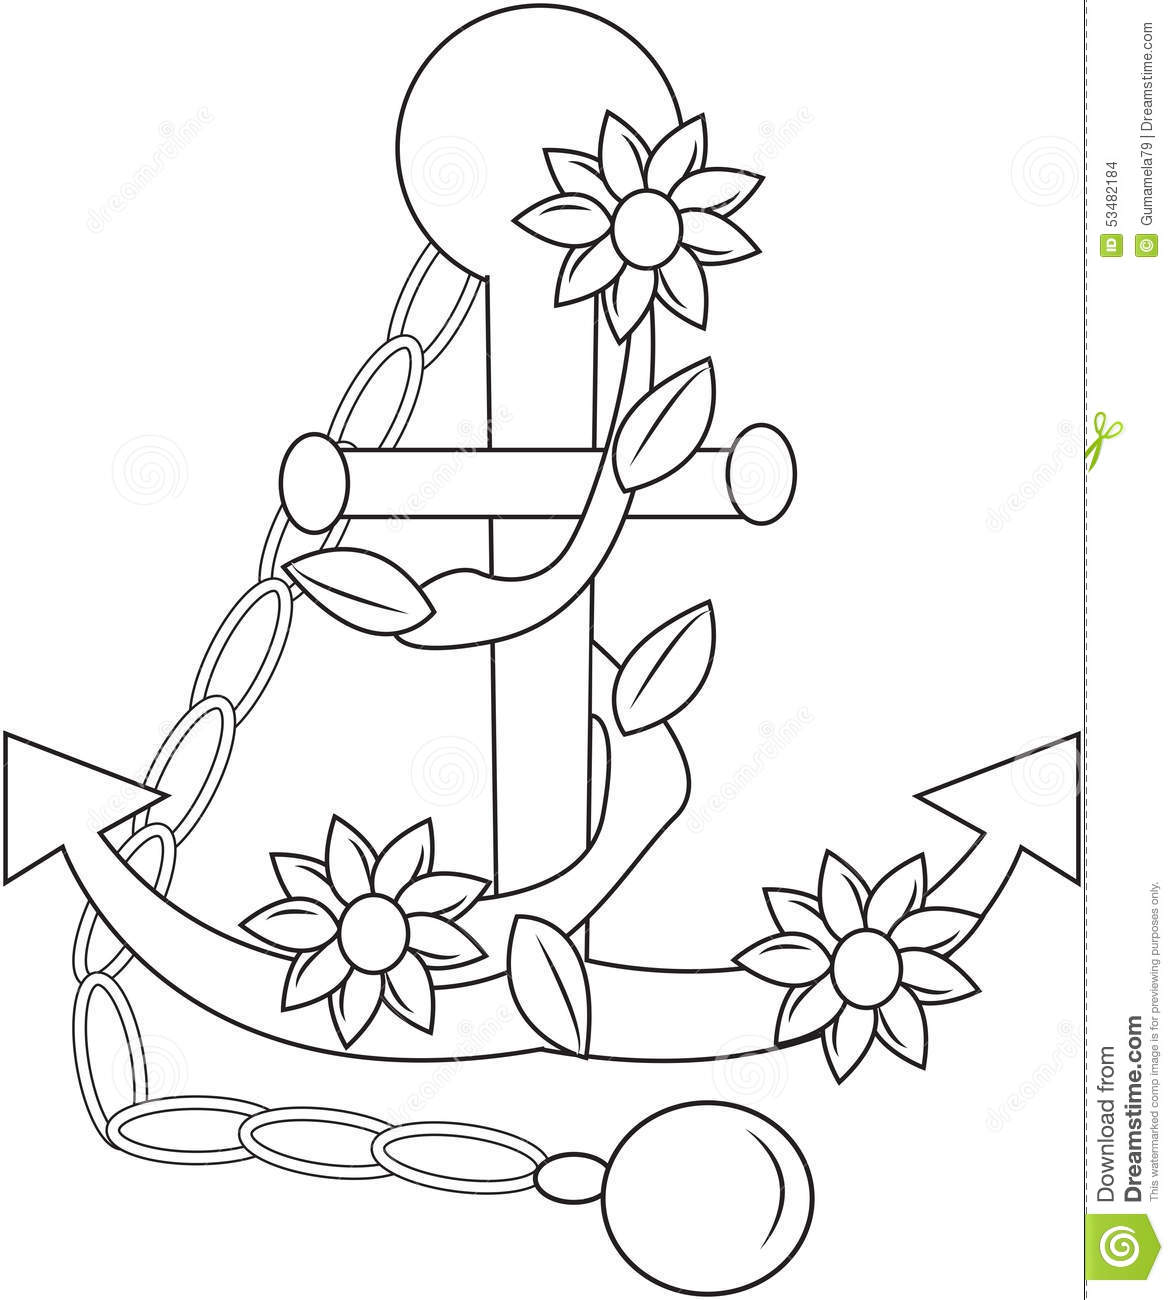 Sea Anchor Coloring Vector For Adults